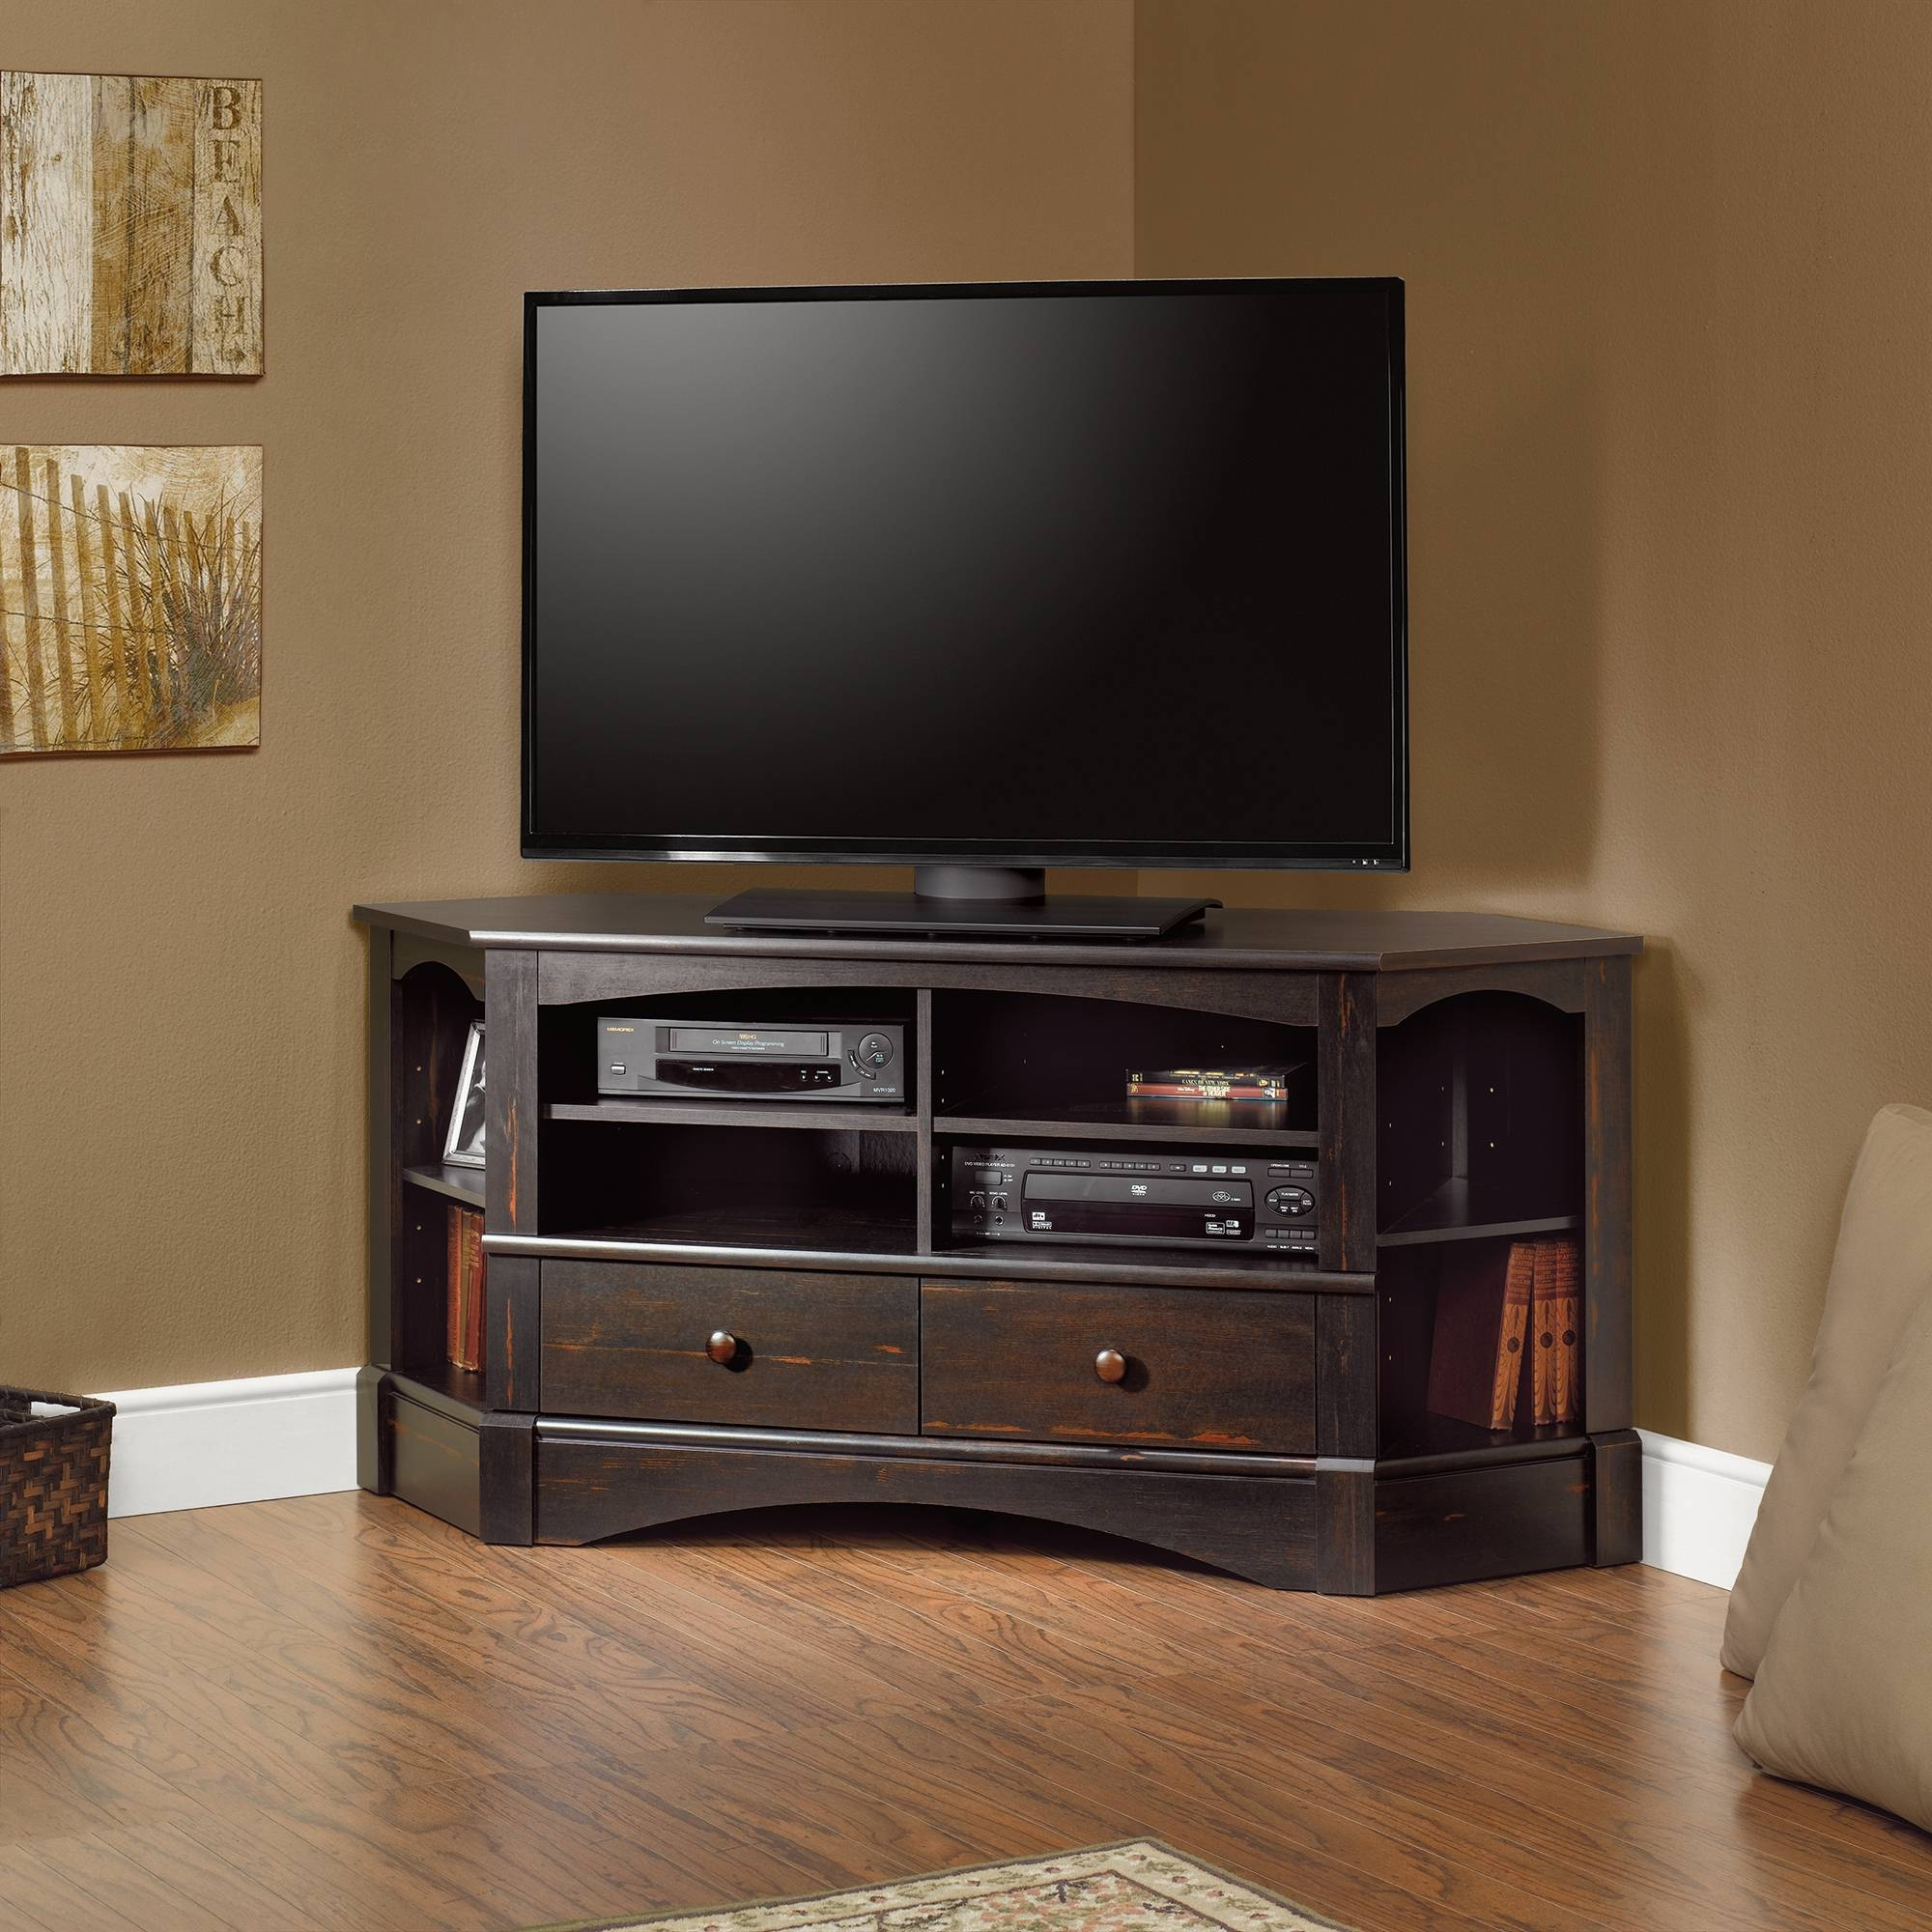 Harbor View | Corner Entertainment Credenza | 402902 | Sauder With Tv Cabinets Corner Units (View 15 of 15)